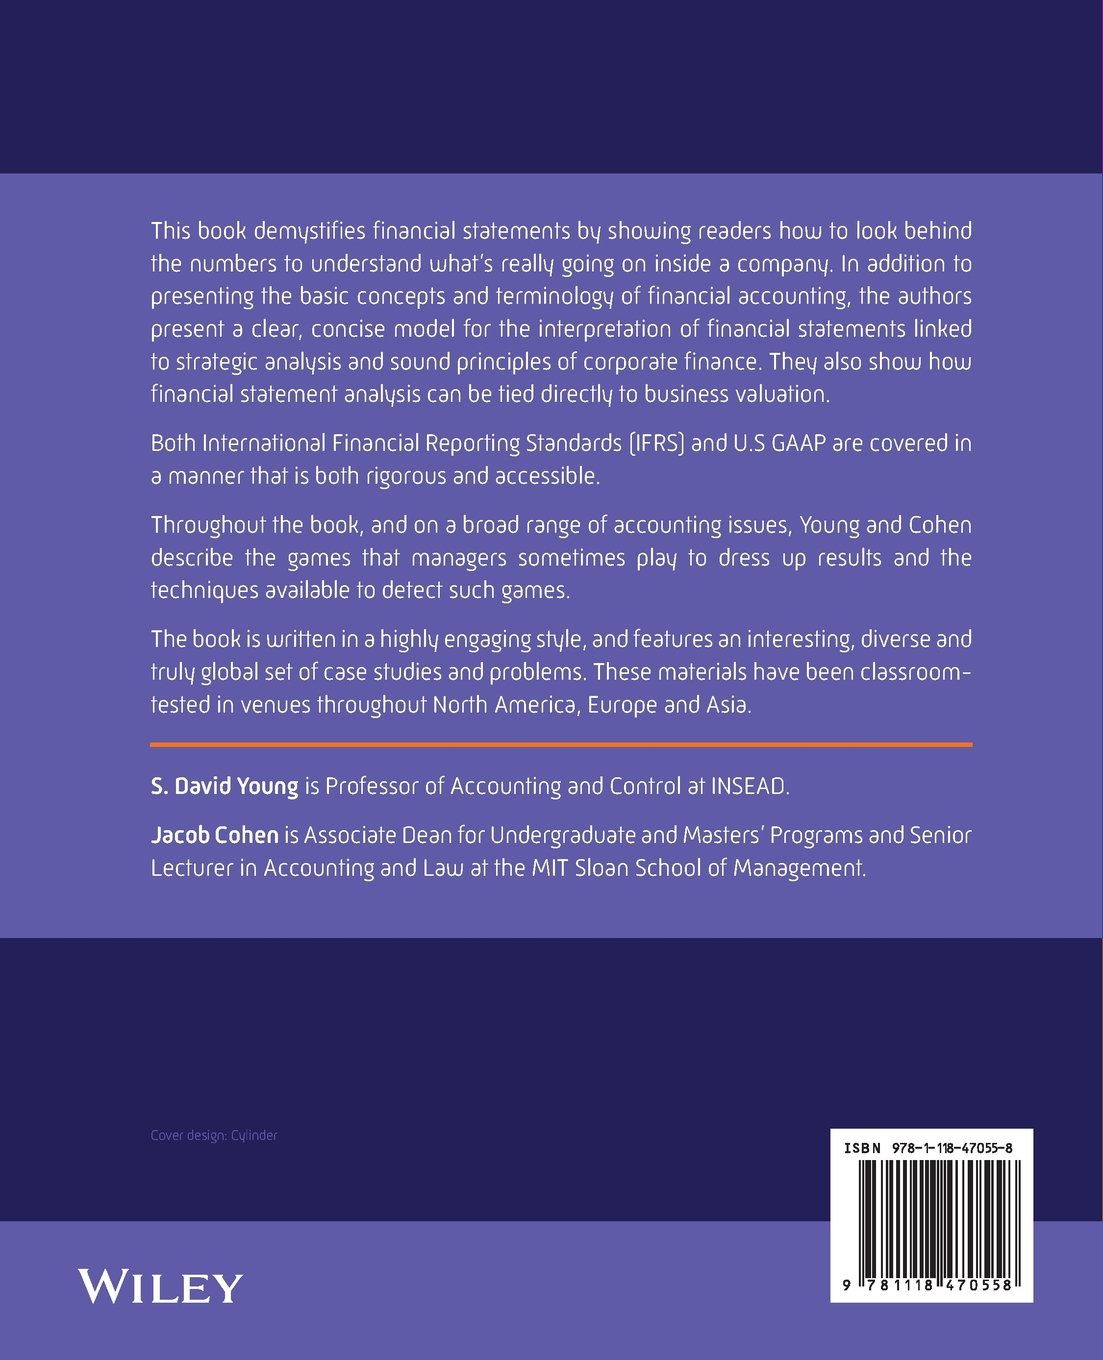 amazon corporate financial reporting and analysis david young